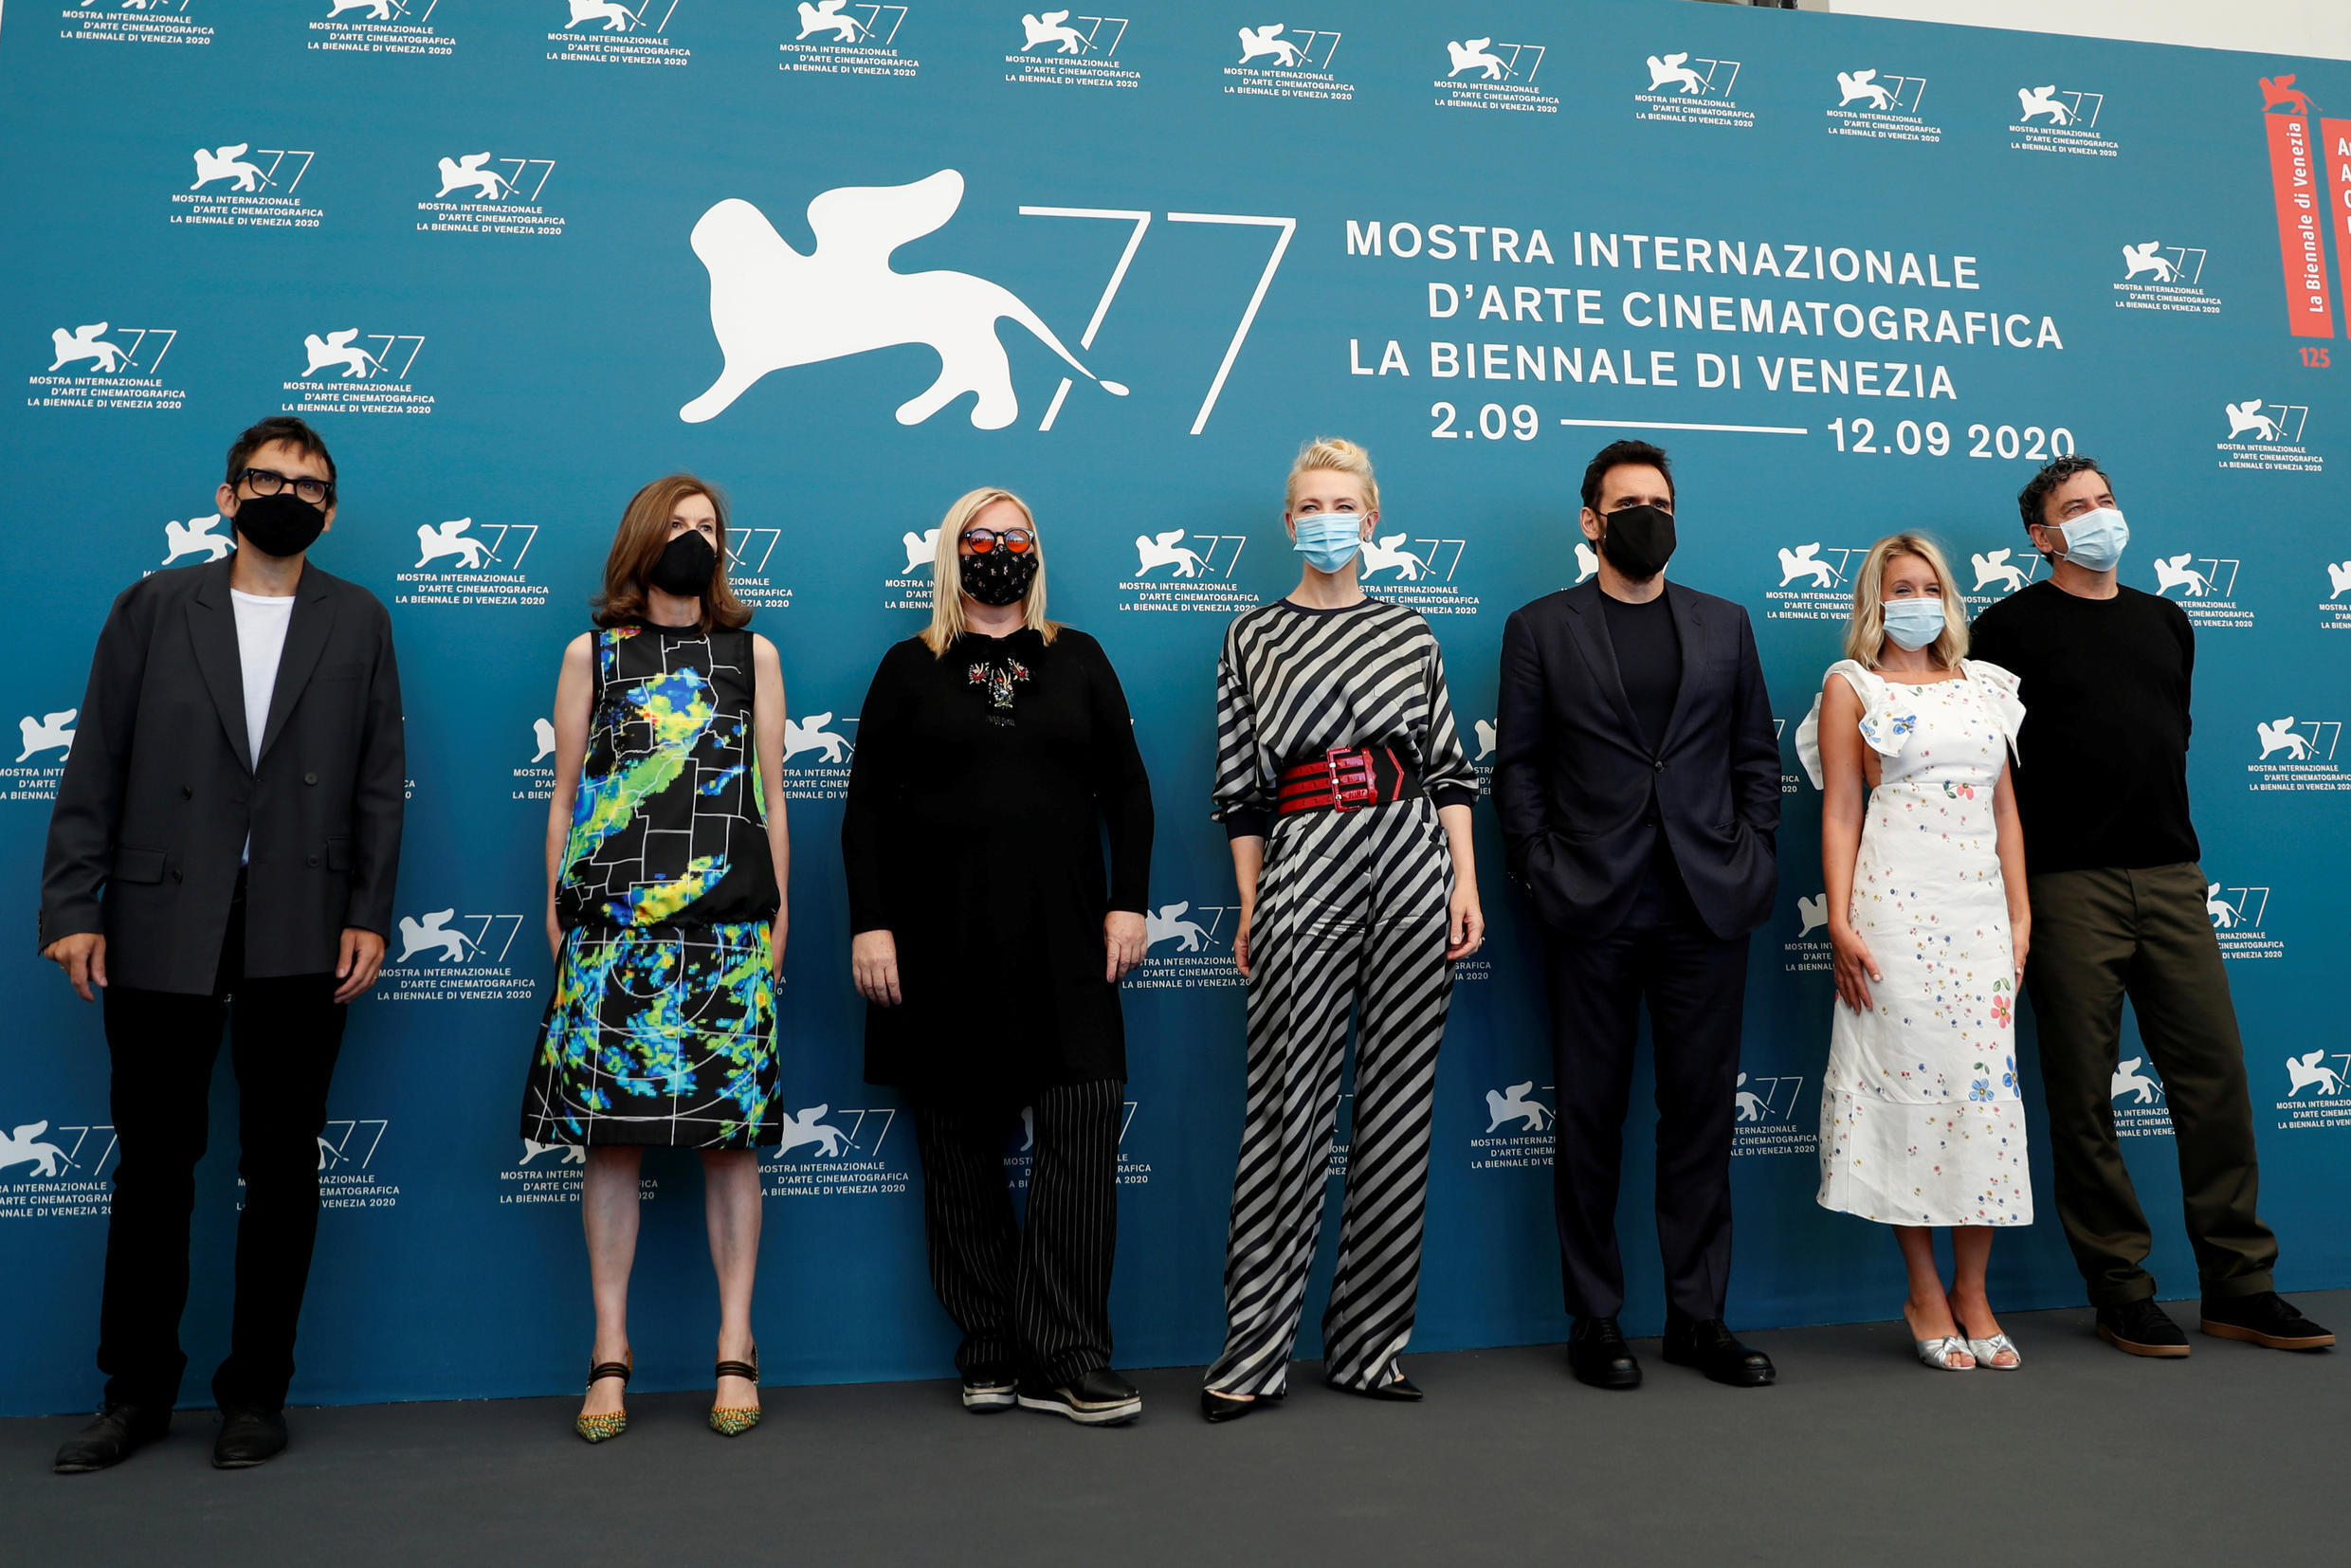 Led by Cate Blanchett, jury members pose at the start of the 77th Venice Film Festival.